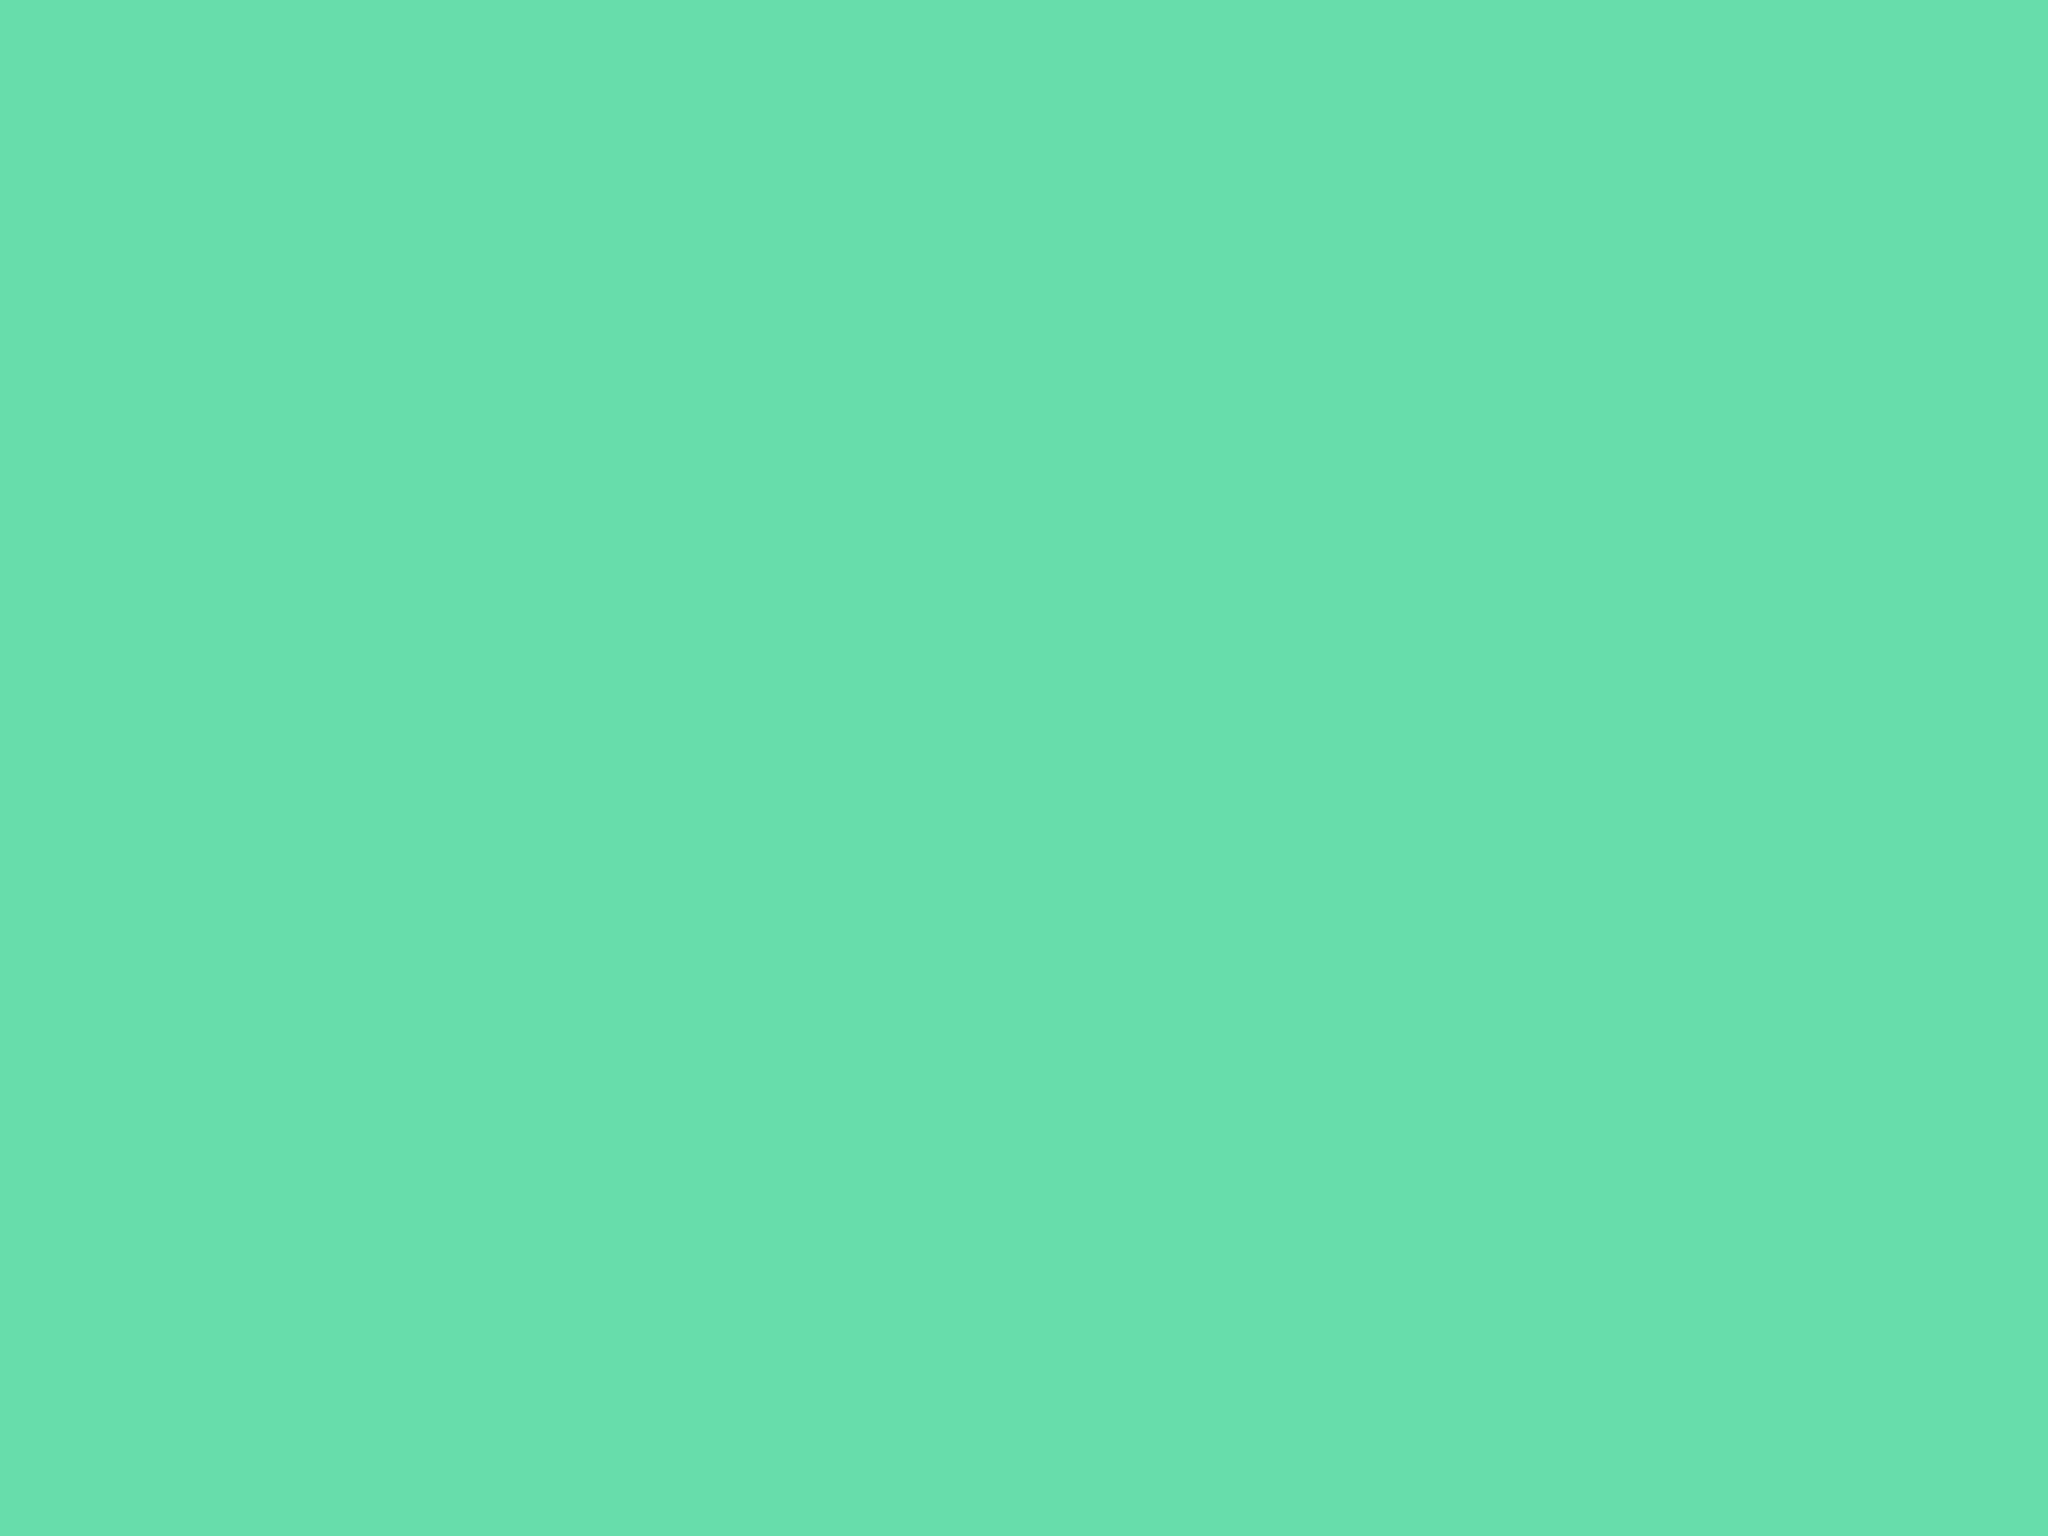 2048x1536 Medium Aquamarine Solid Color Background